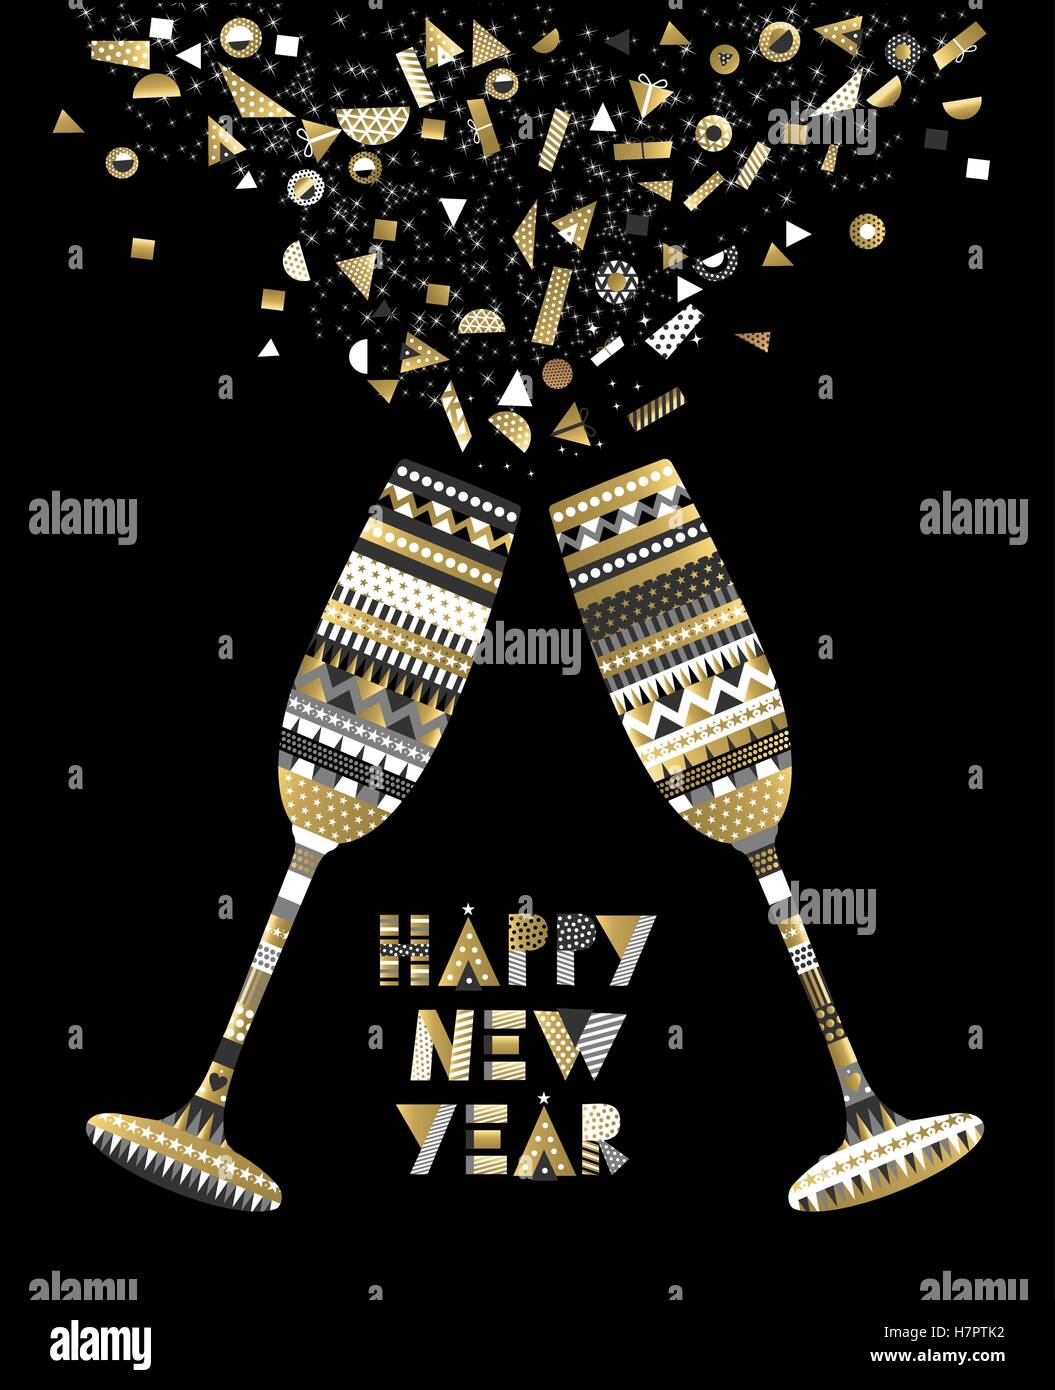 gold happy new year card design with drink glass making toast and abstract elegant decoration eps10 vector